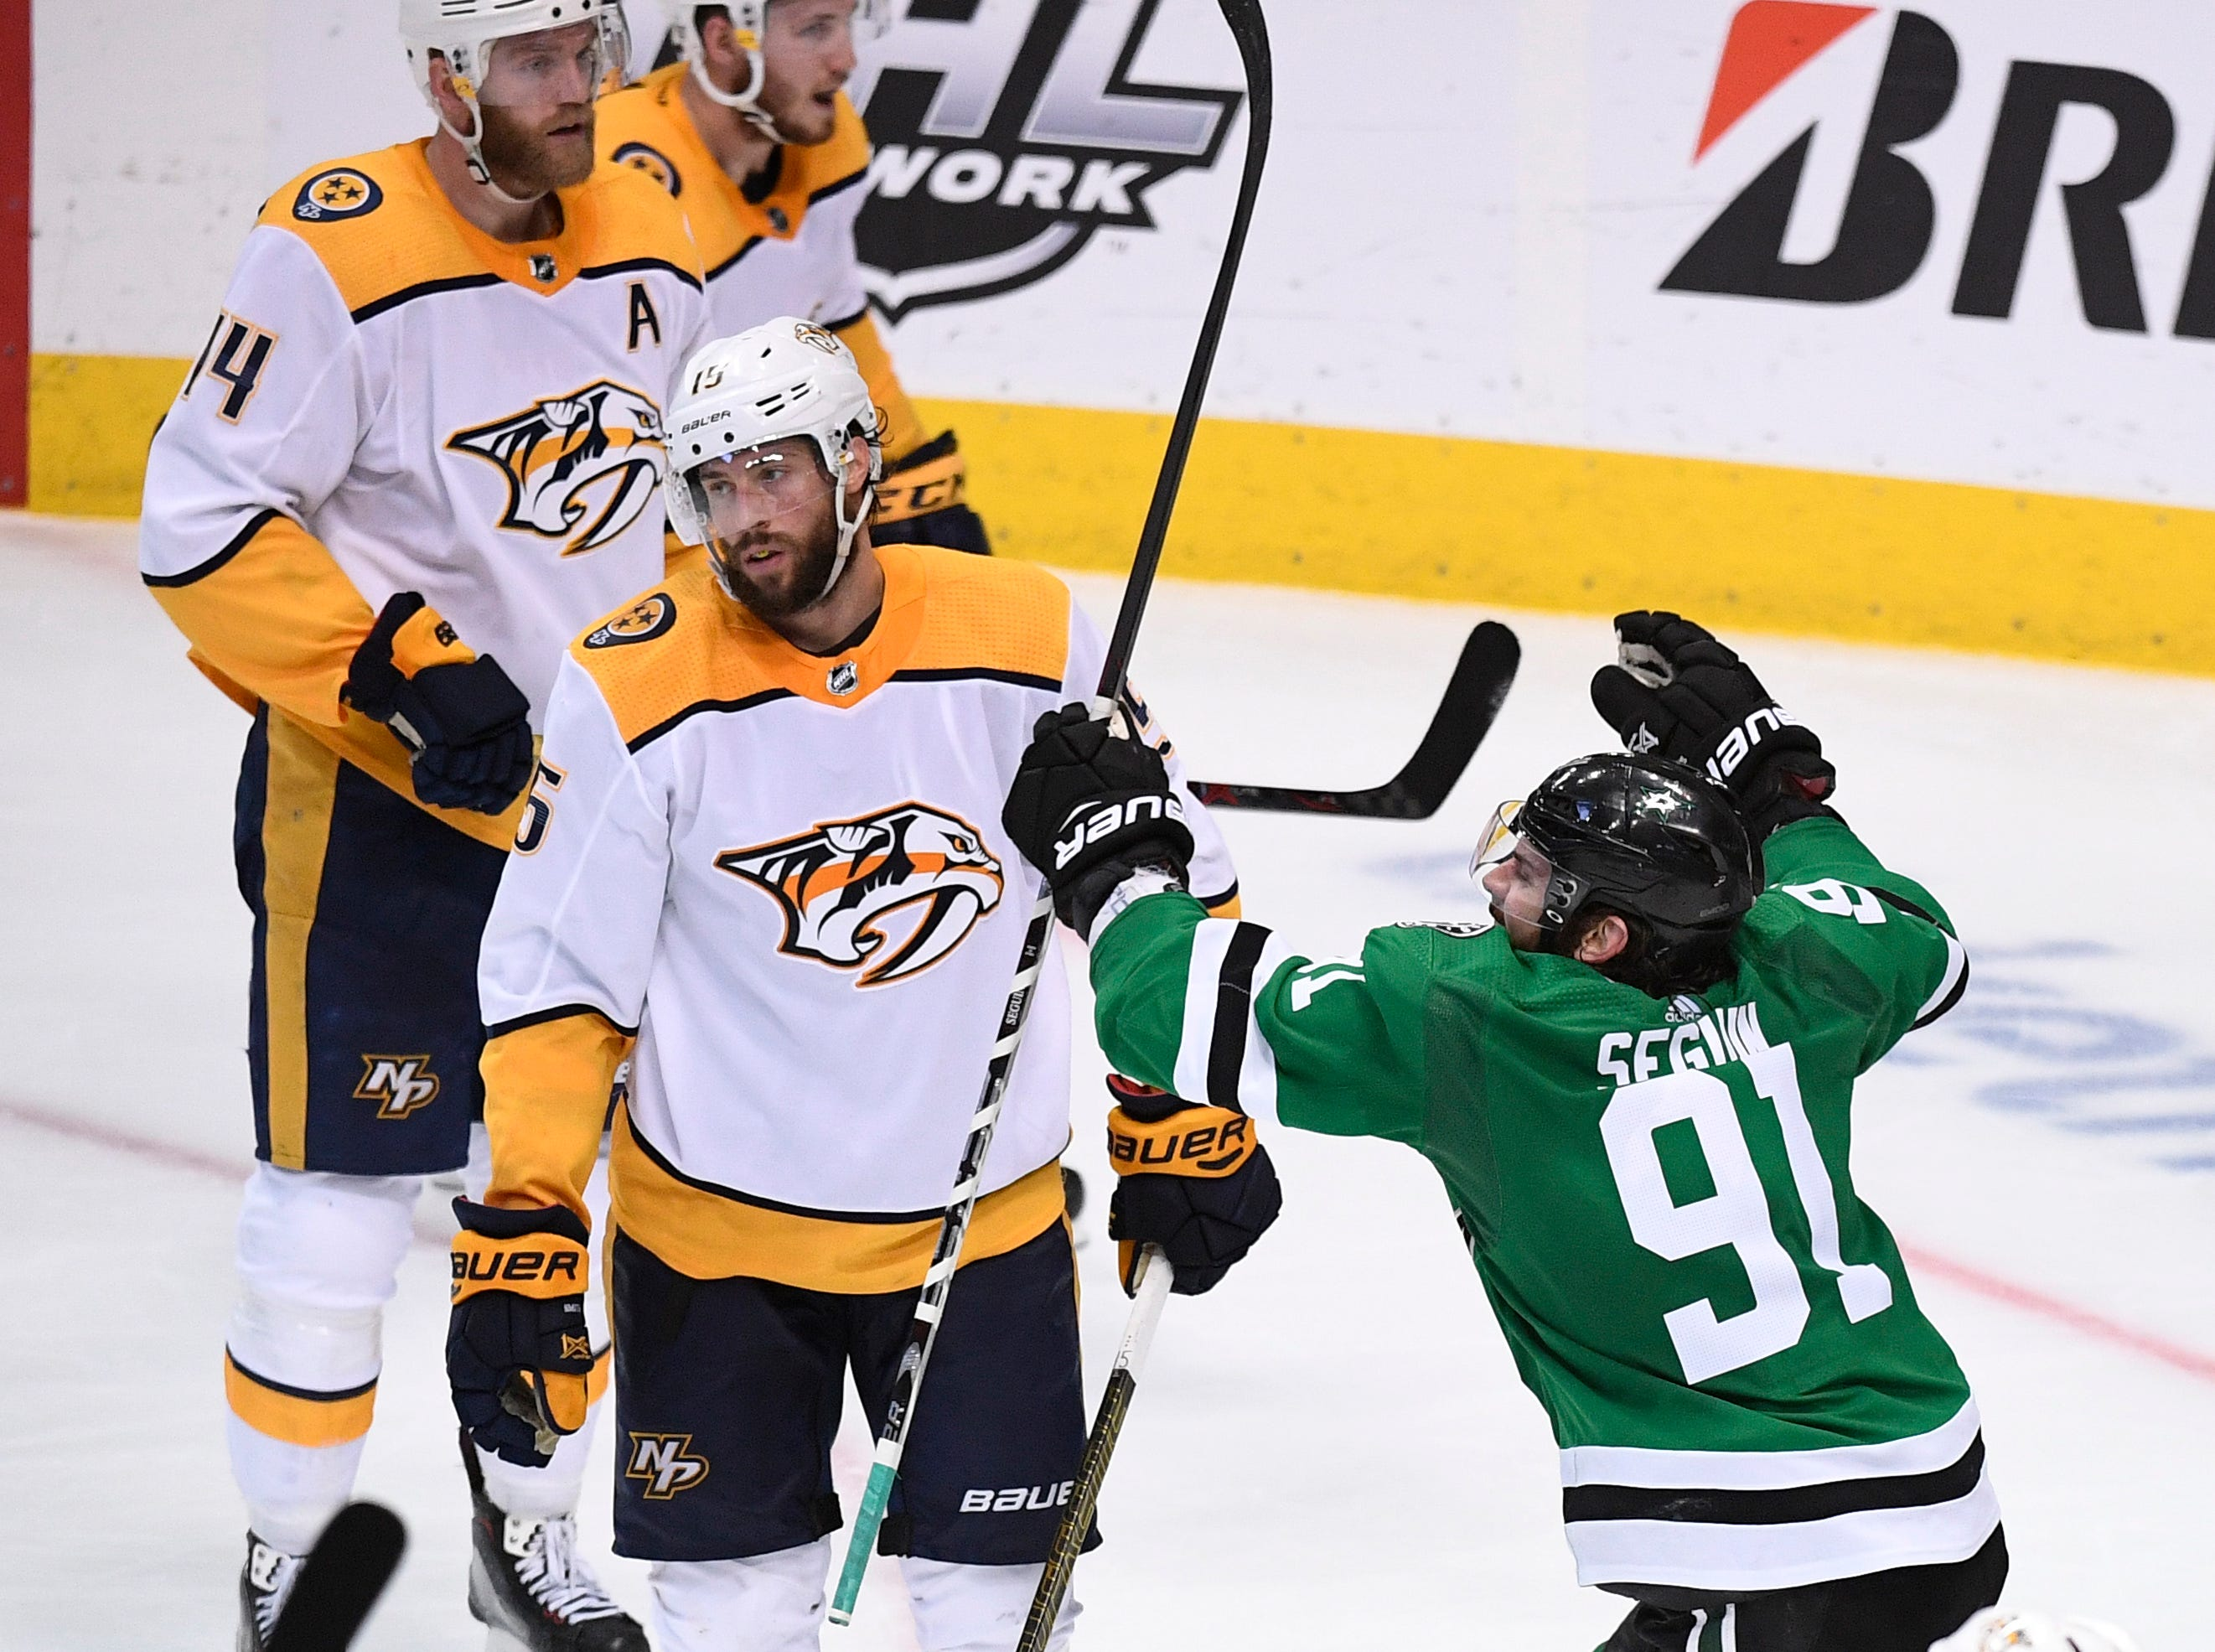 Dallas Stars center Tyler Seguin (91) reacts to the game-winning overtime goal by defenseman John Klingberg (3) as Nashville Predators right wing Craig Smith (15) looks away in the divisional semifinal game at the American Airlines Center in Dallas, Texas, Monday, April 22, 2019.